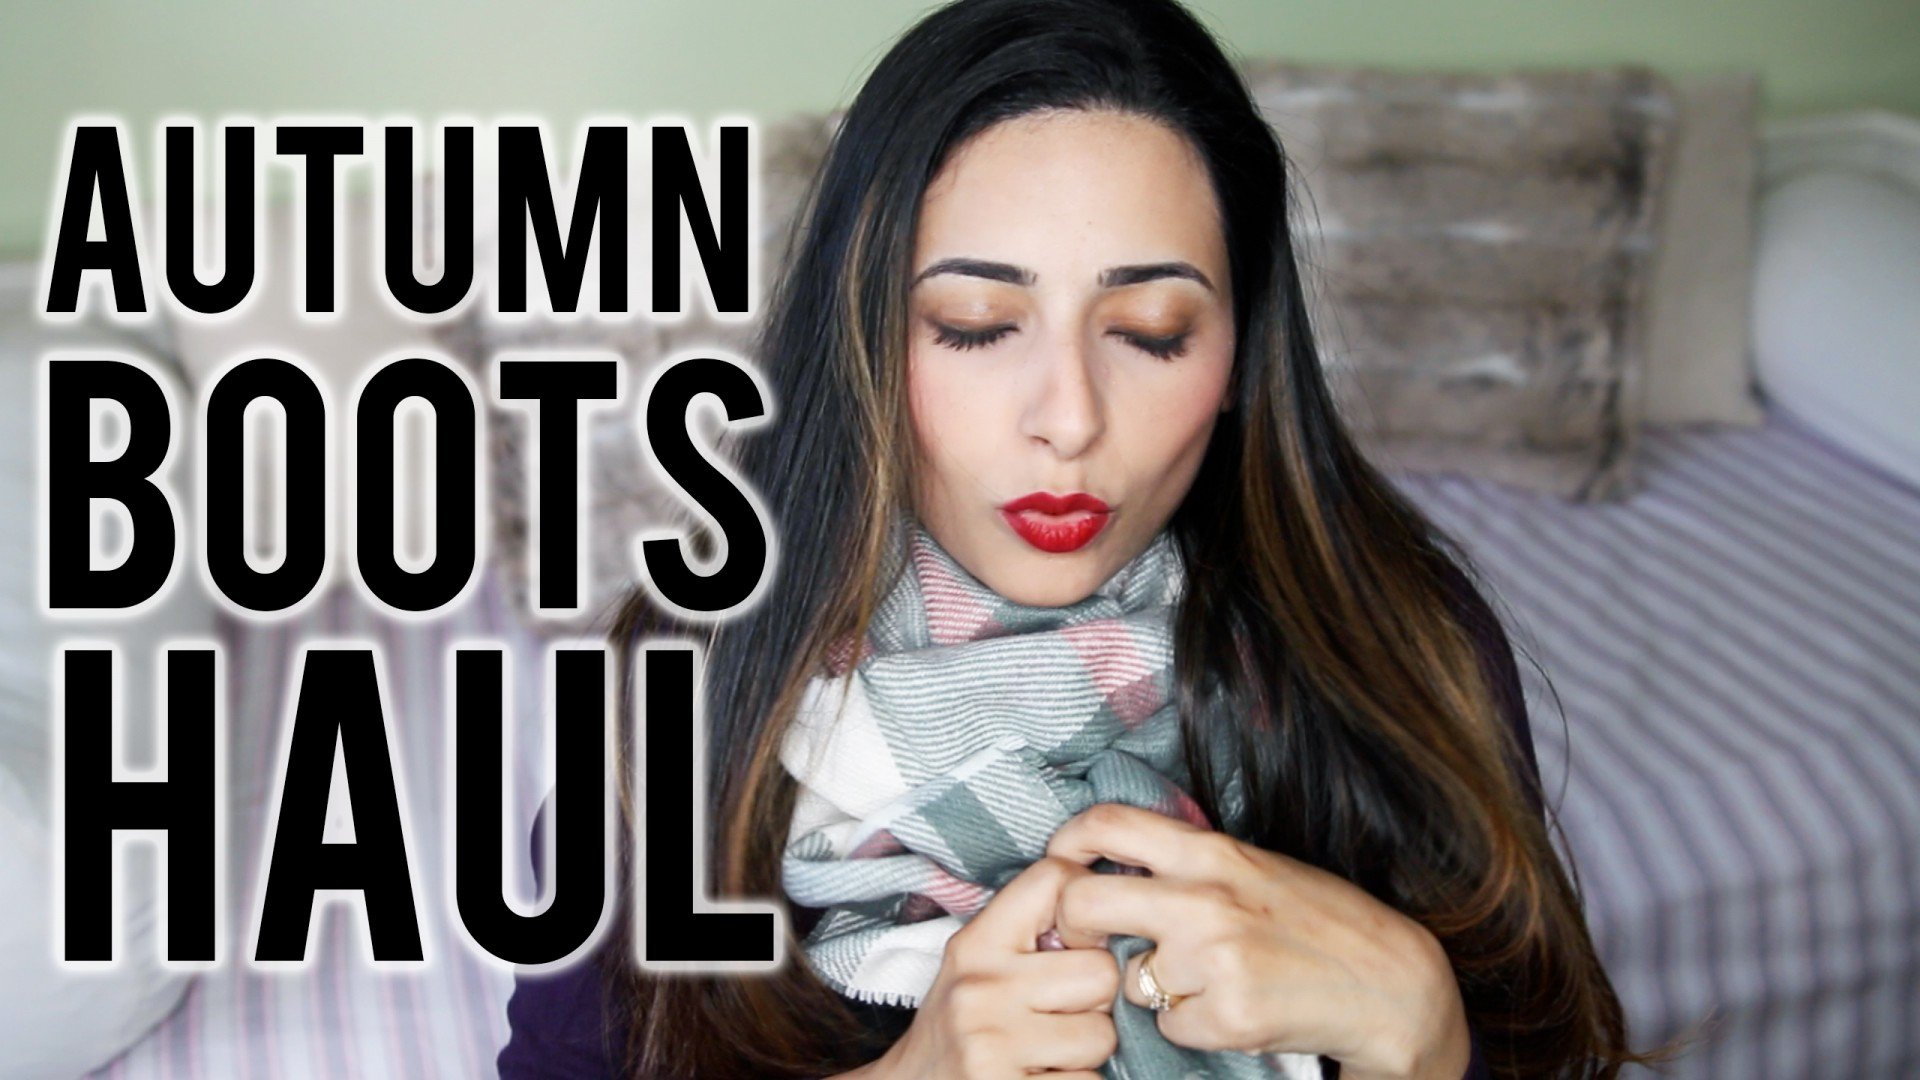 Autumn Boots Haul – Mummy, Baby & Toddler